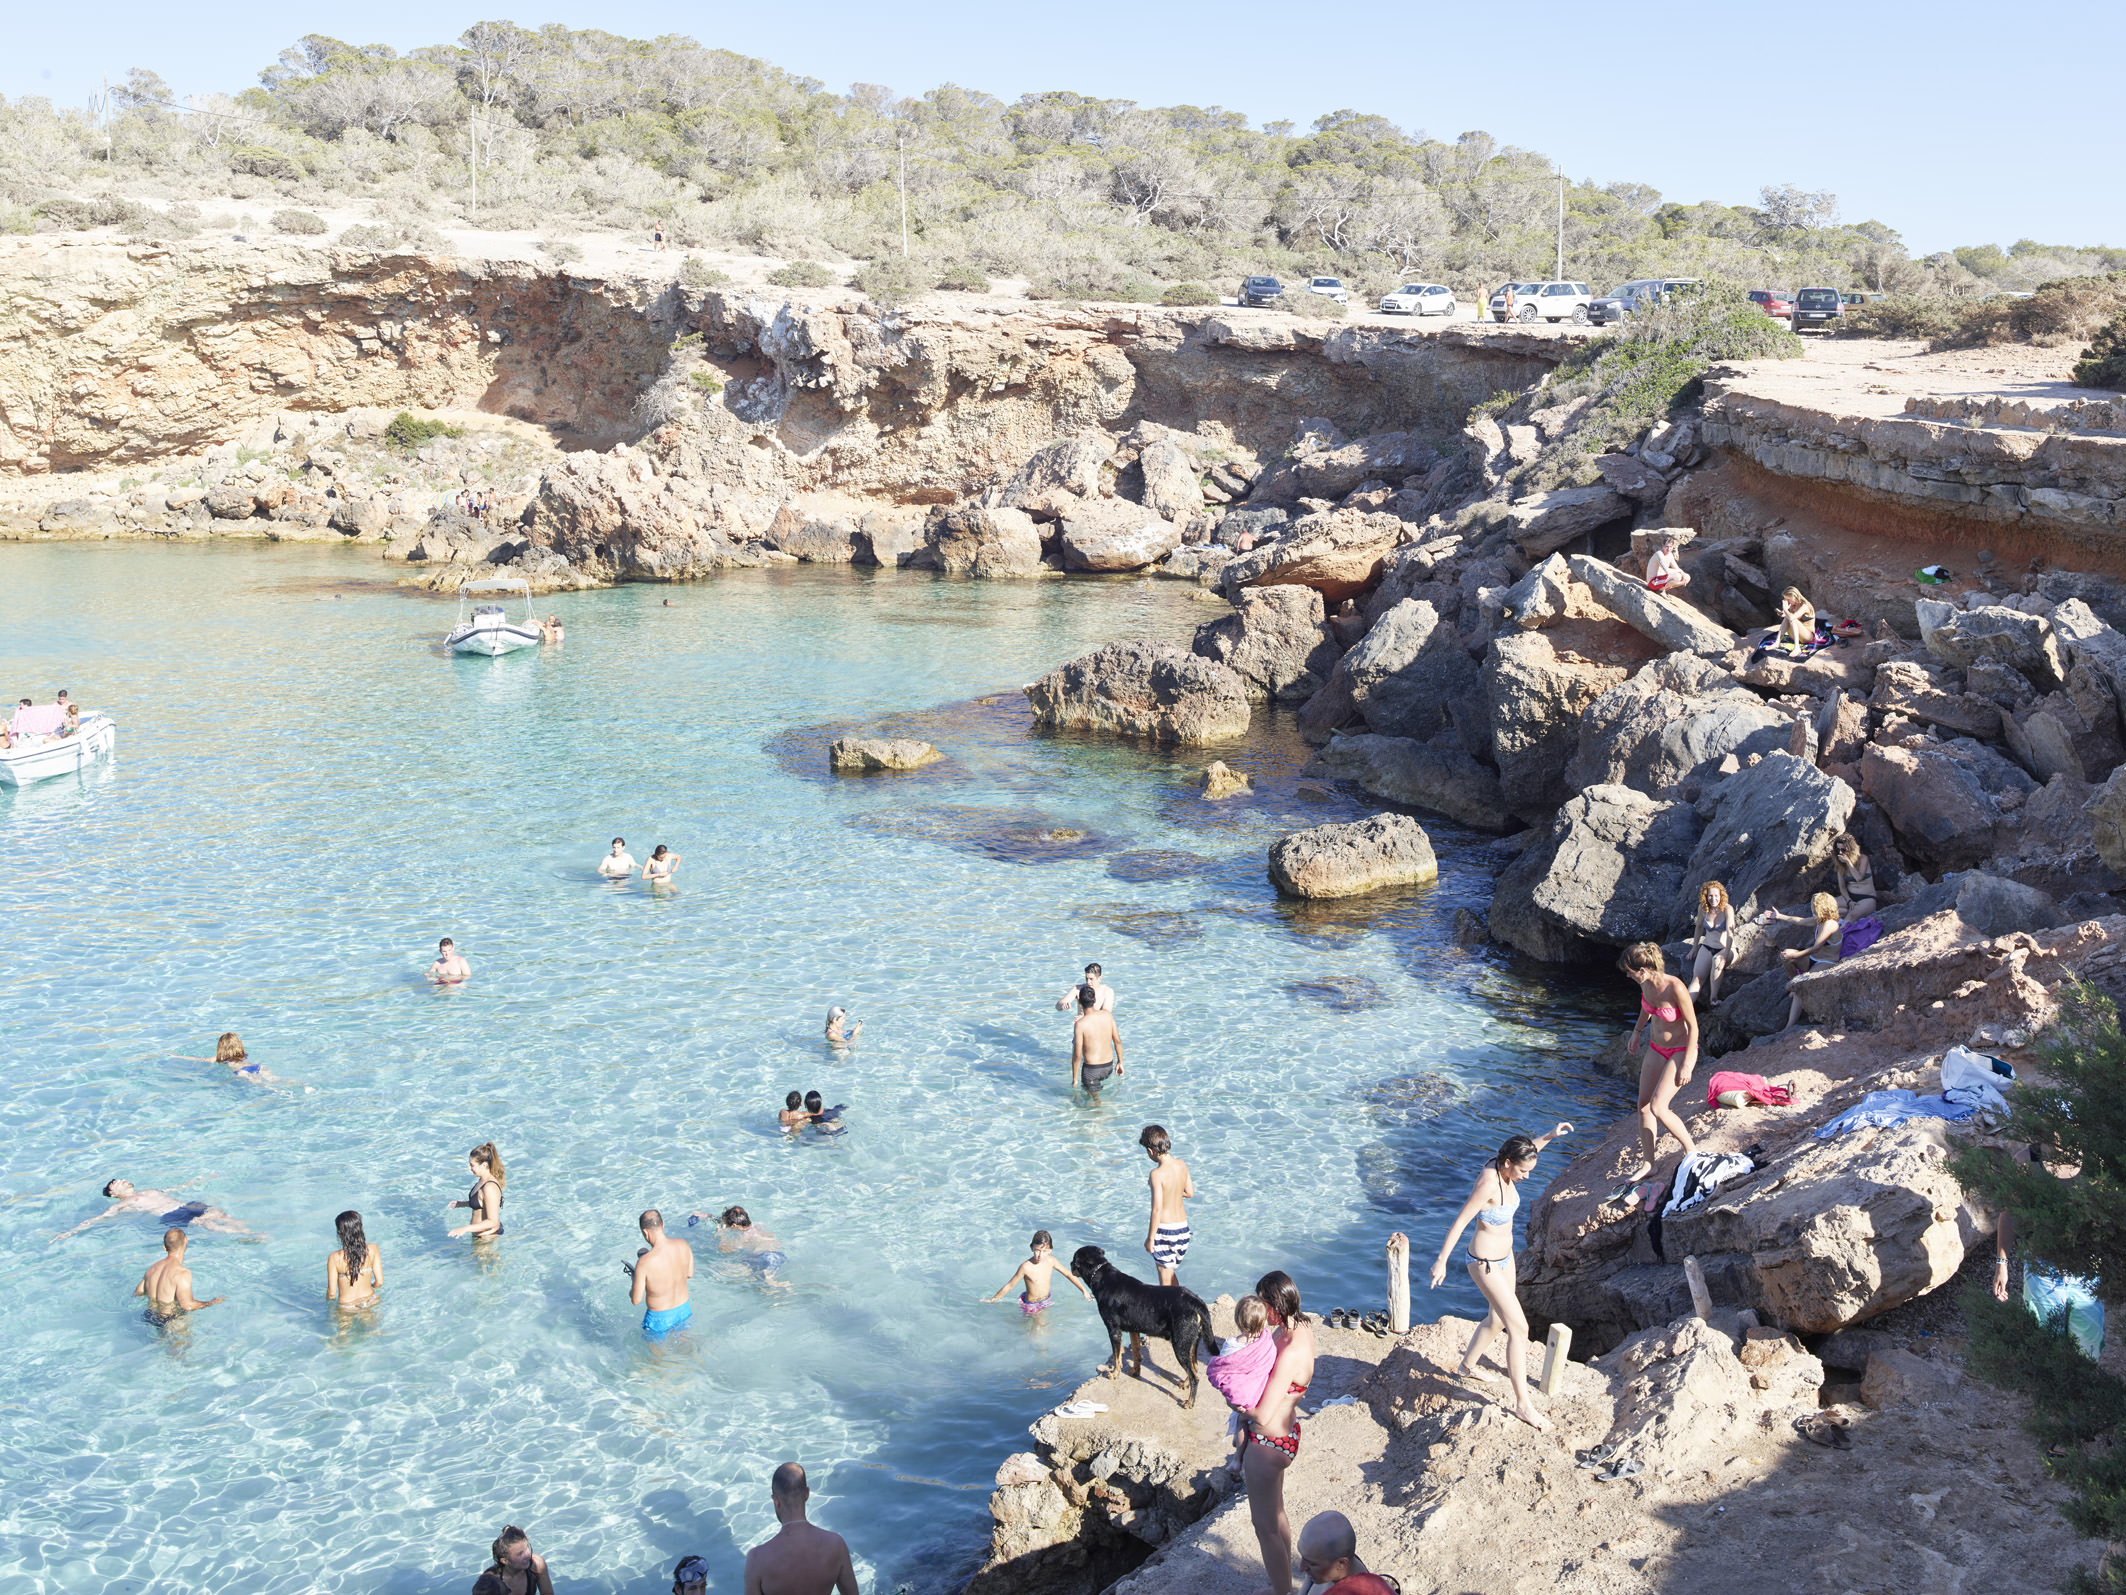 Massimo Vitali, Cala Conta Black Dog